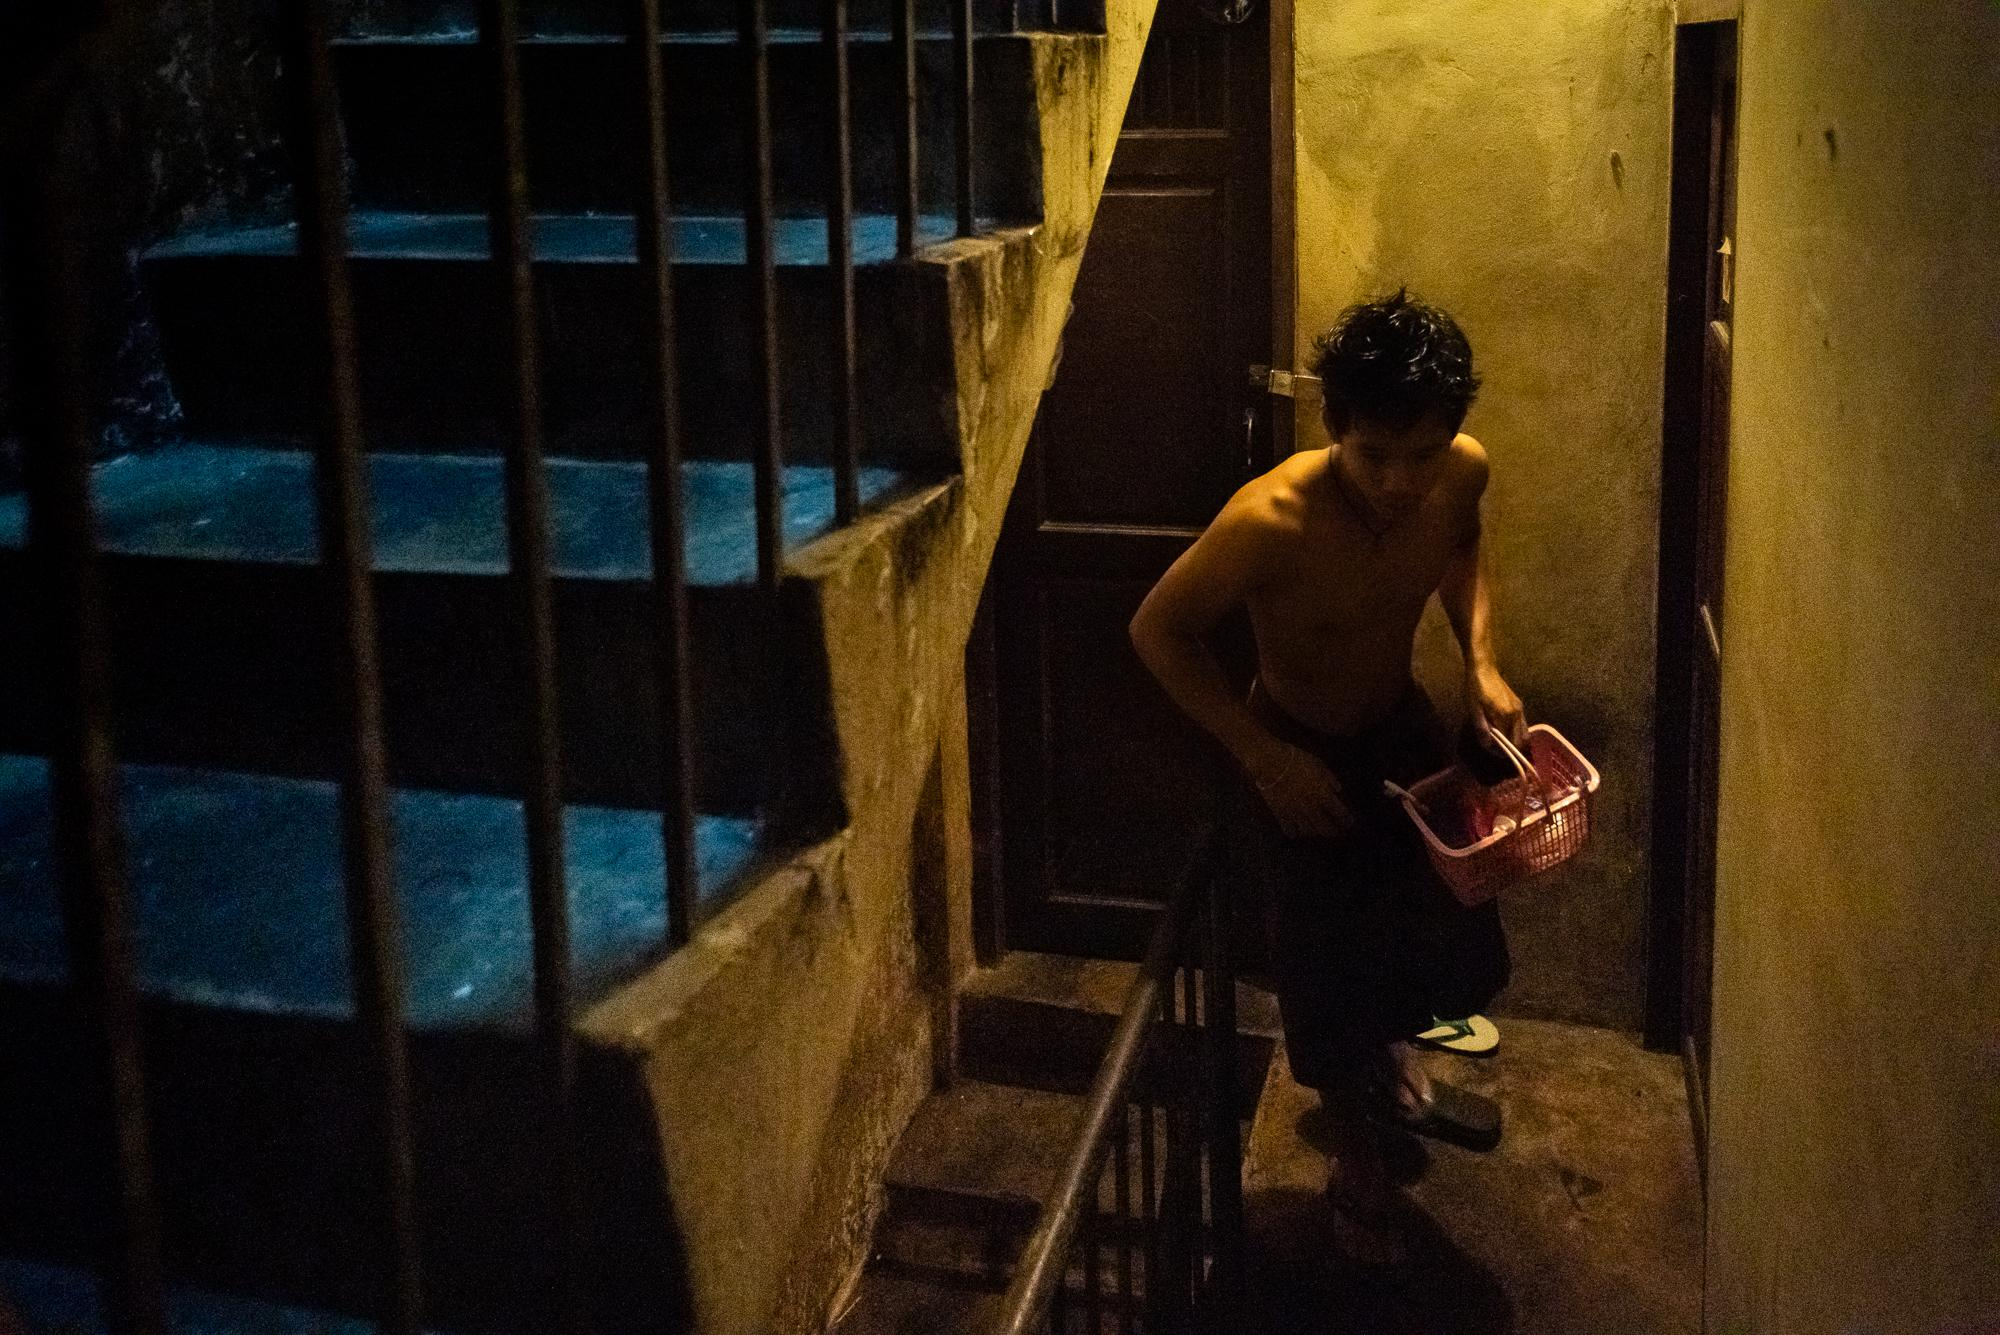 BANGKOK, THAILAND – SEPTEMBER 5, 2018: A Burmese worker carrying toiletries in a plastic basket walking back to his apartment after taking a shower in shared bathrooms.